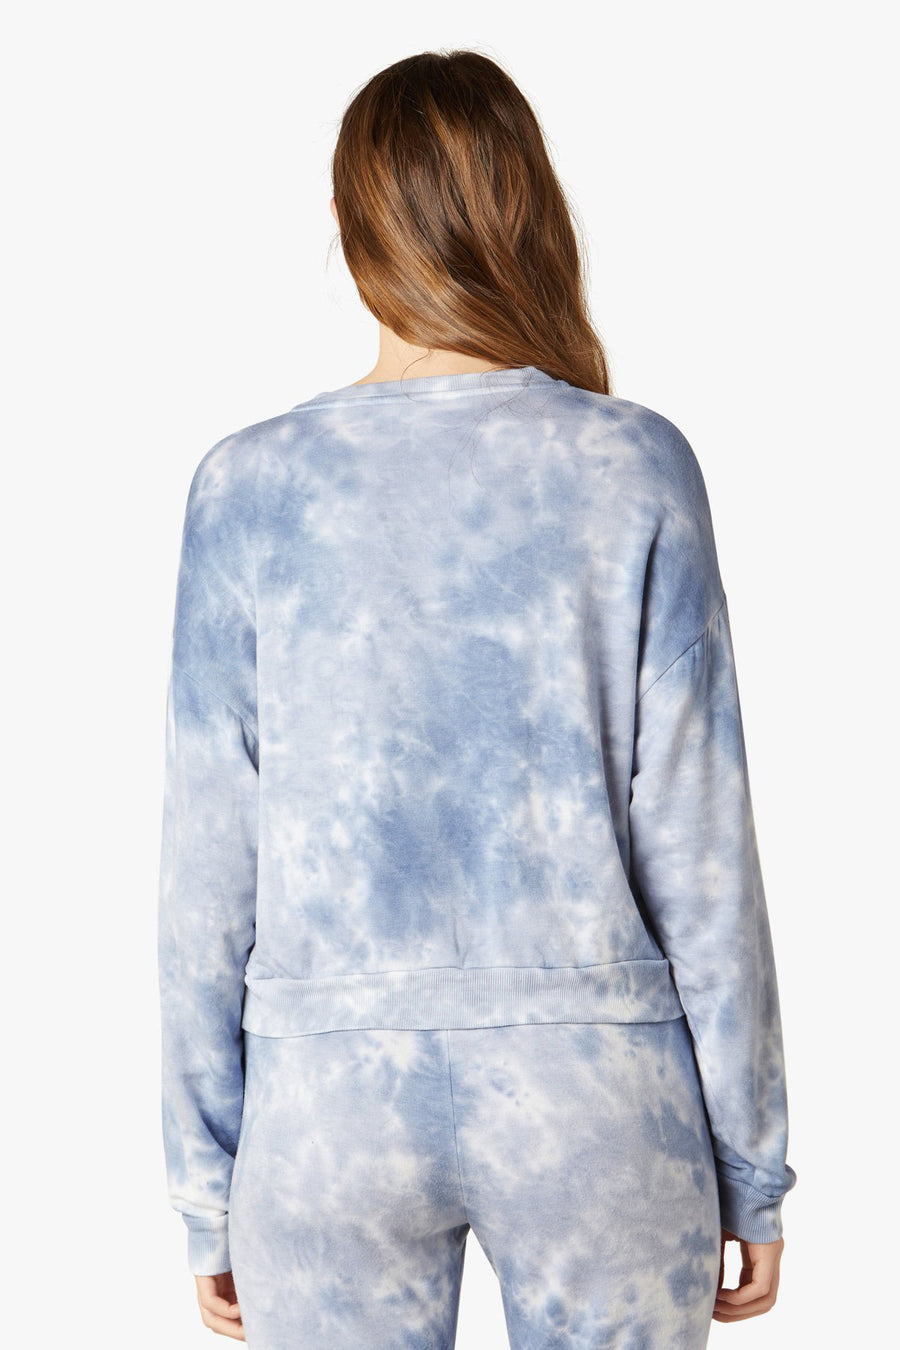 Day to Day Pullover - Blue Dream Gray Cloud Dye